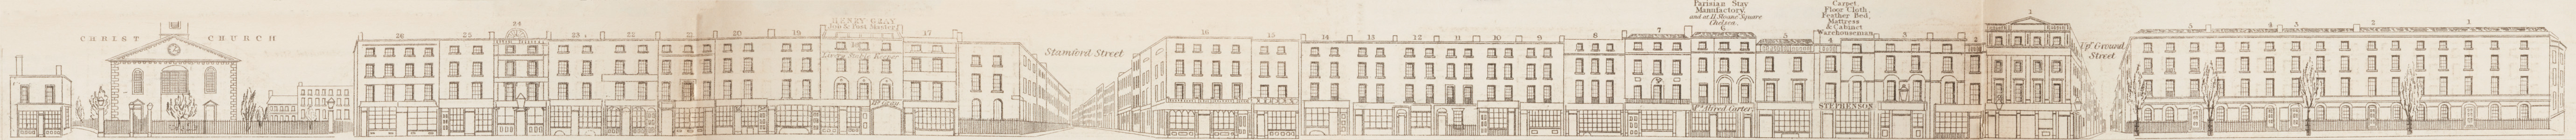 map - Tallis's London street views : No. 57. Blackfriars Road, division 1 (west)